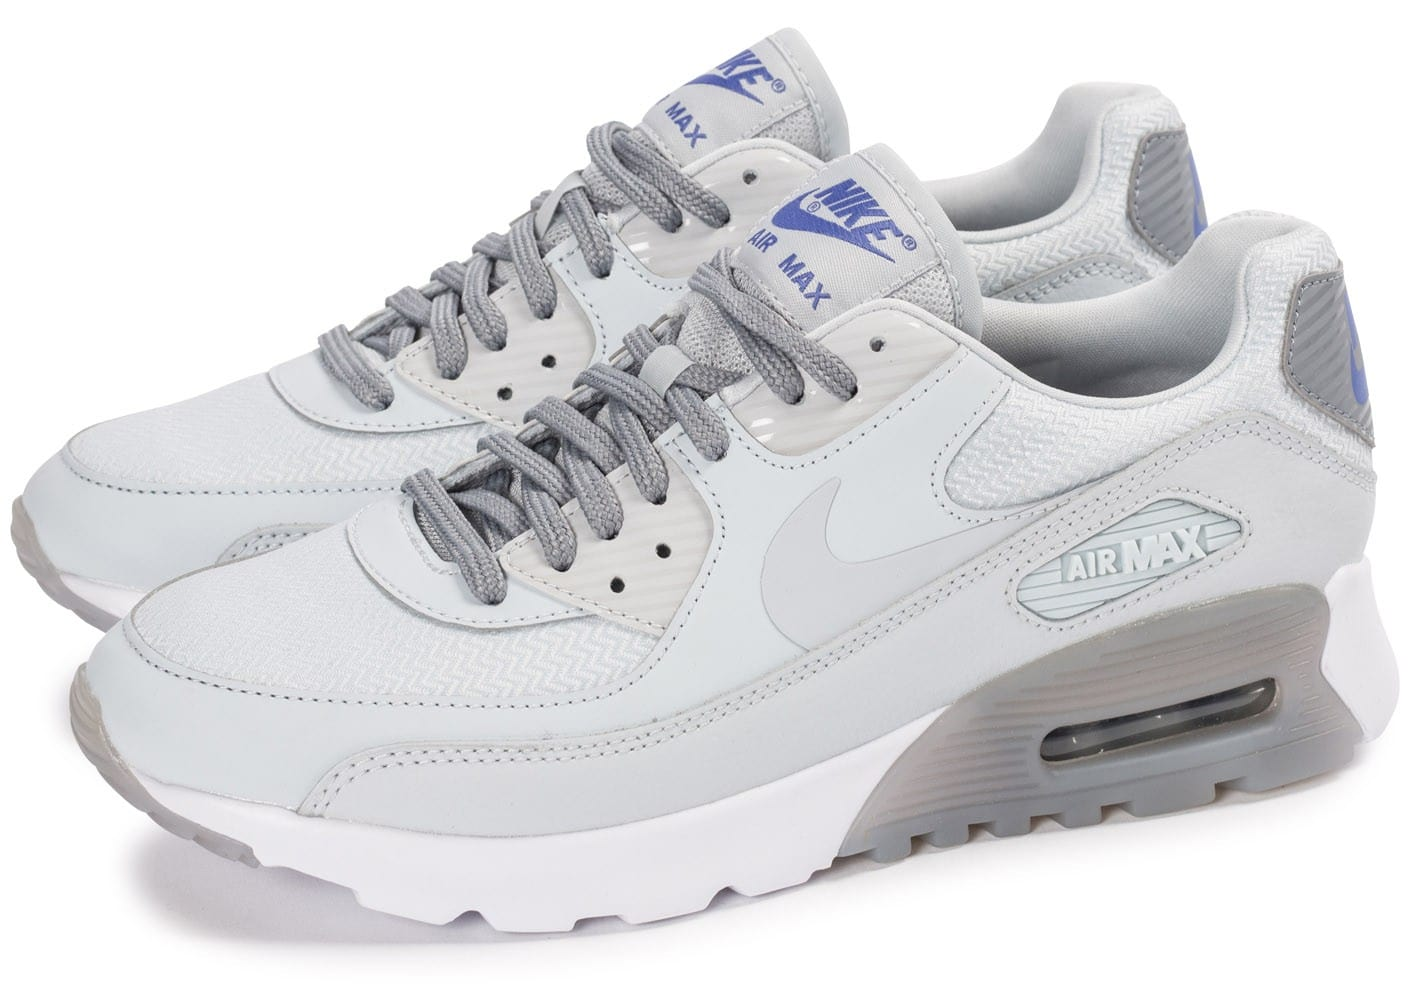 new style 3cdb5 3a24c air max 90 ultra essential femme. Femme Chaussures   Nike ...